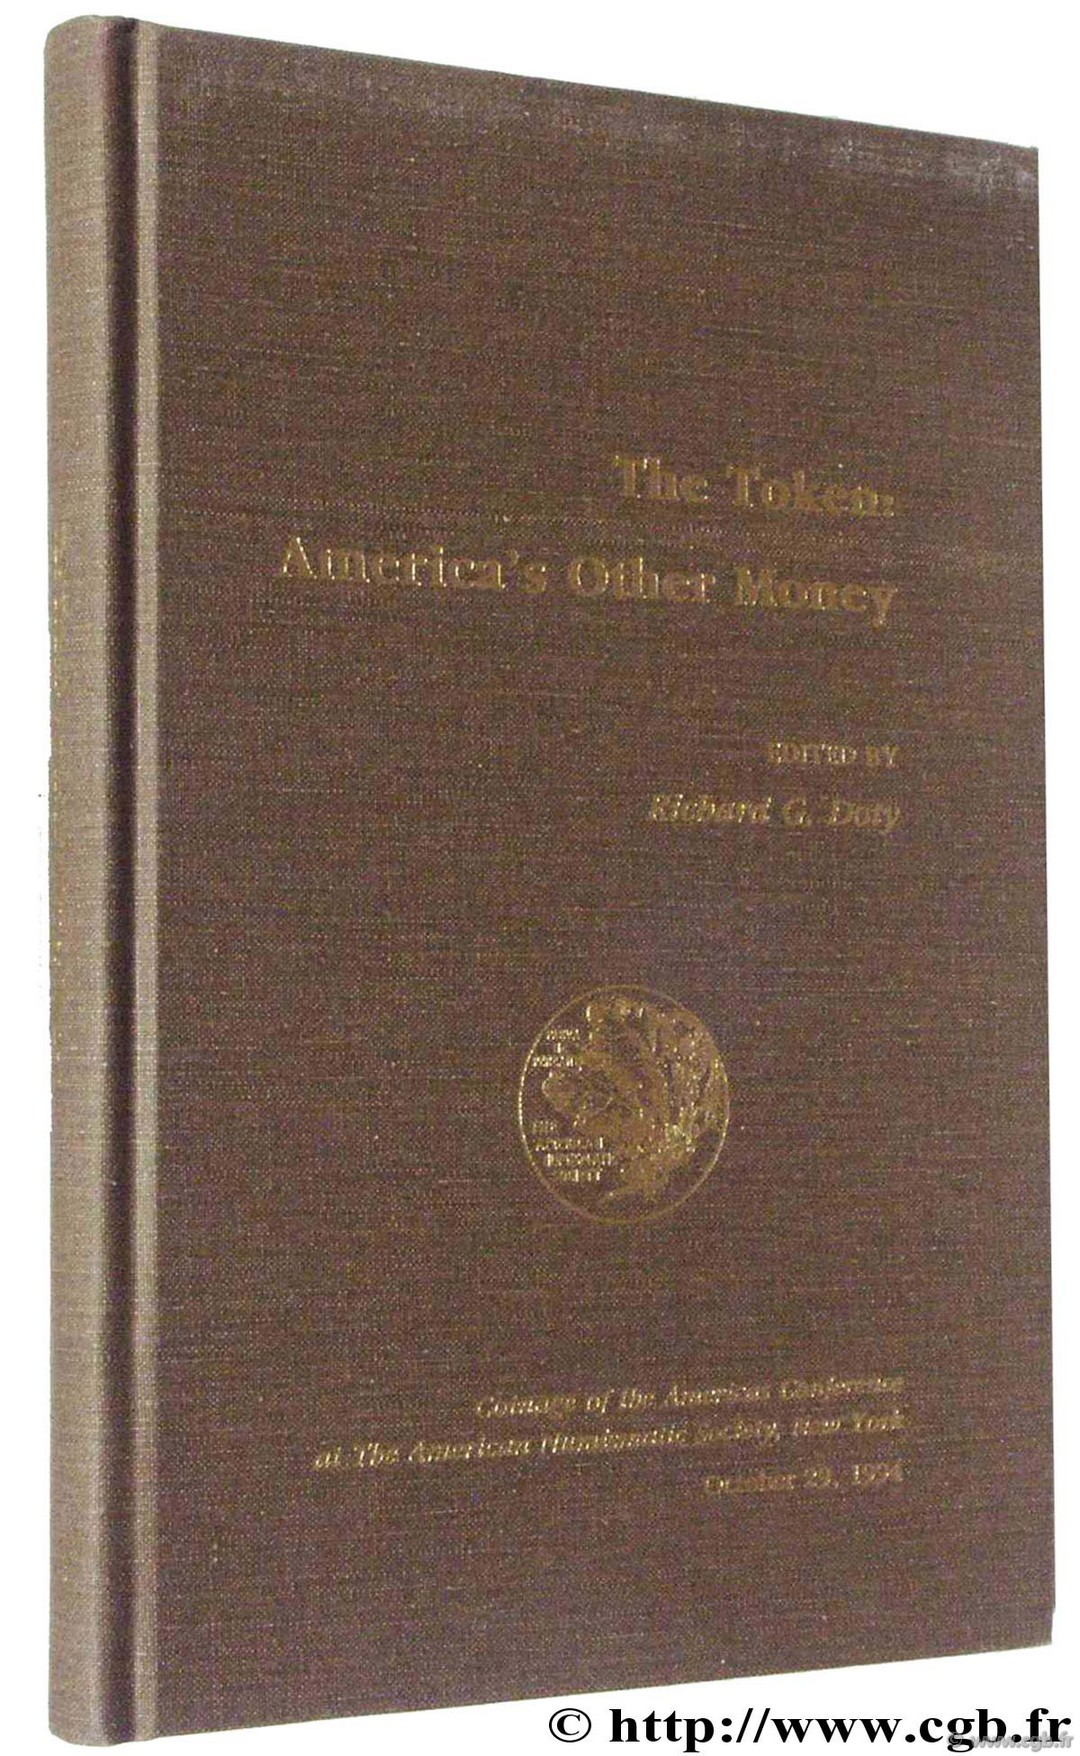 The Token : America s Other Money, Coinage of the Americas Conférence at the American Numismatic Society, New York October 29, 1994